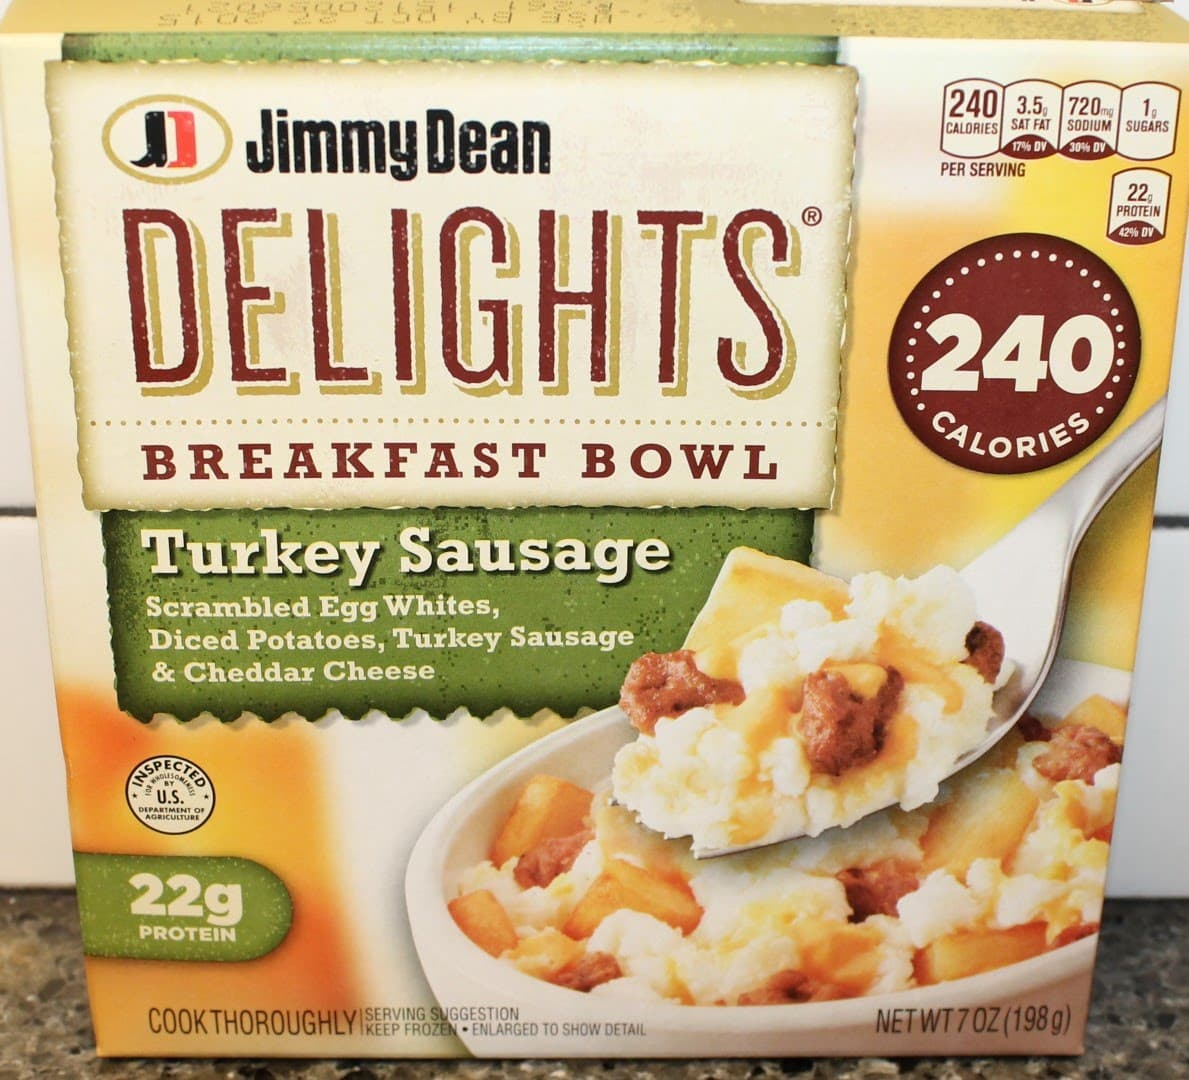 Jimmy Dean Delights Turkey Sausage Breakfast Bowl Health Frozen Foods